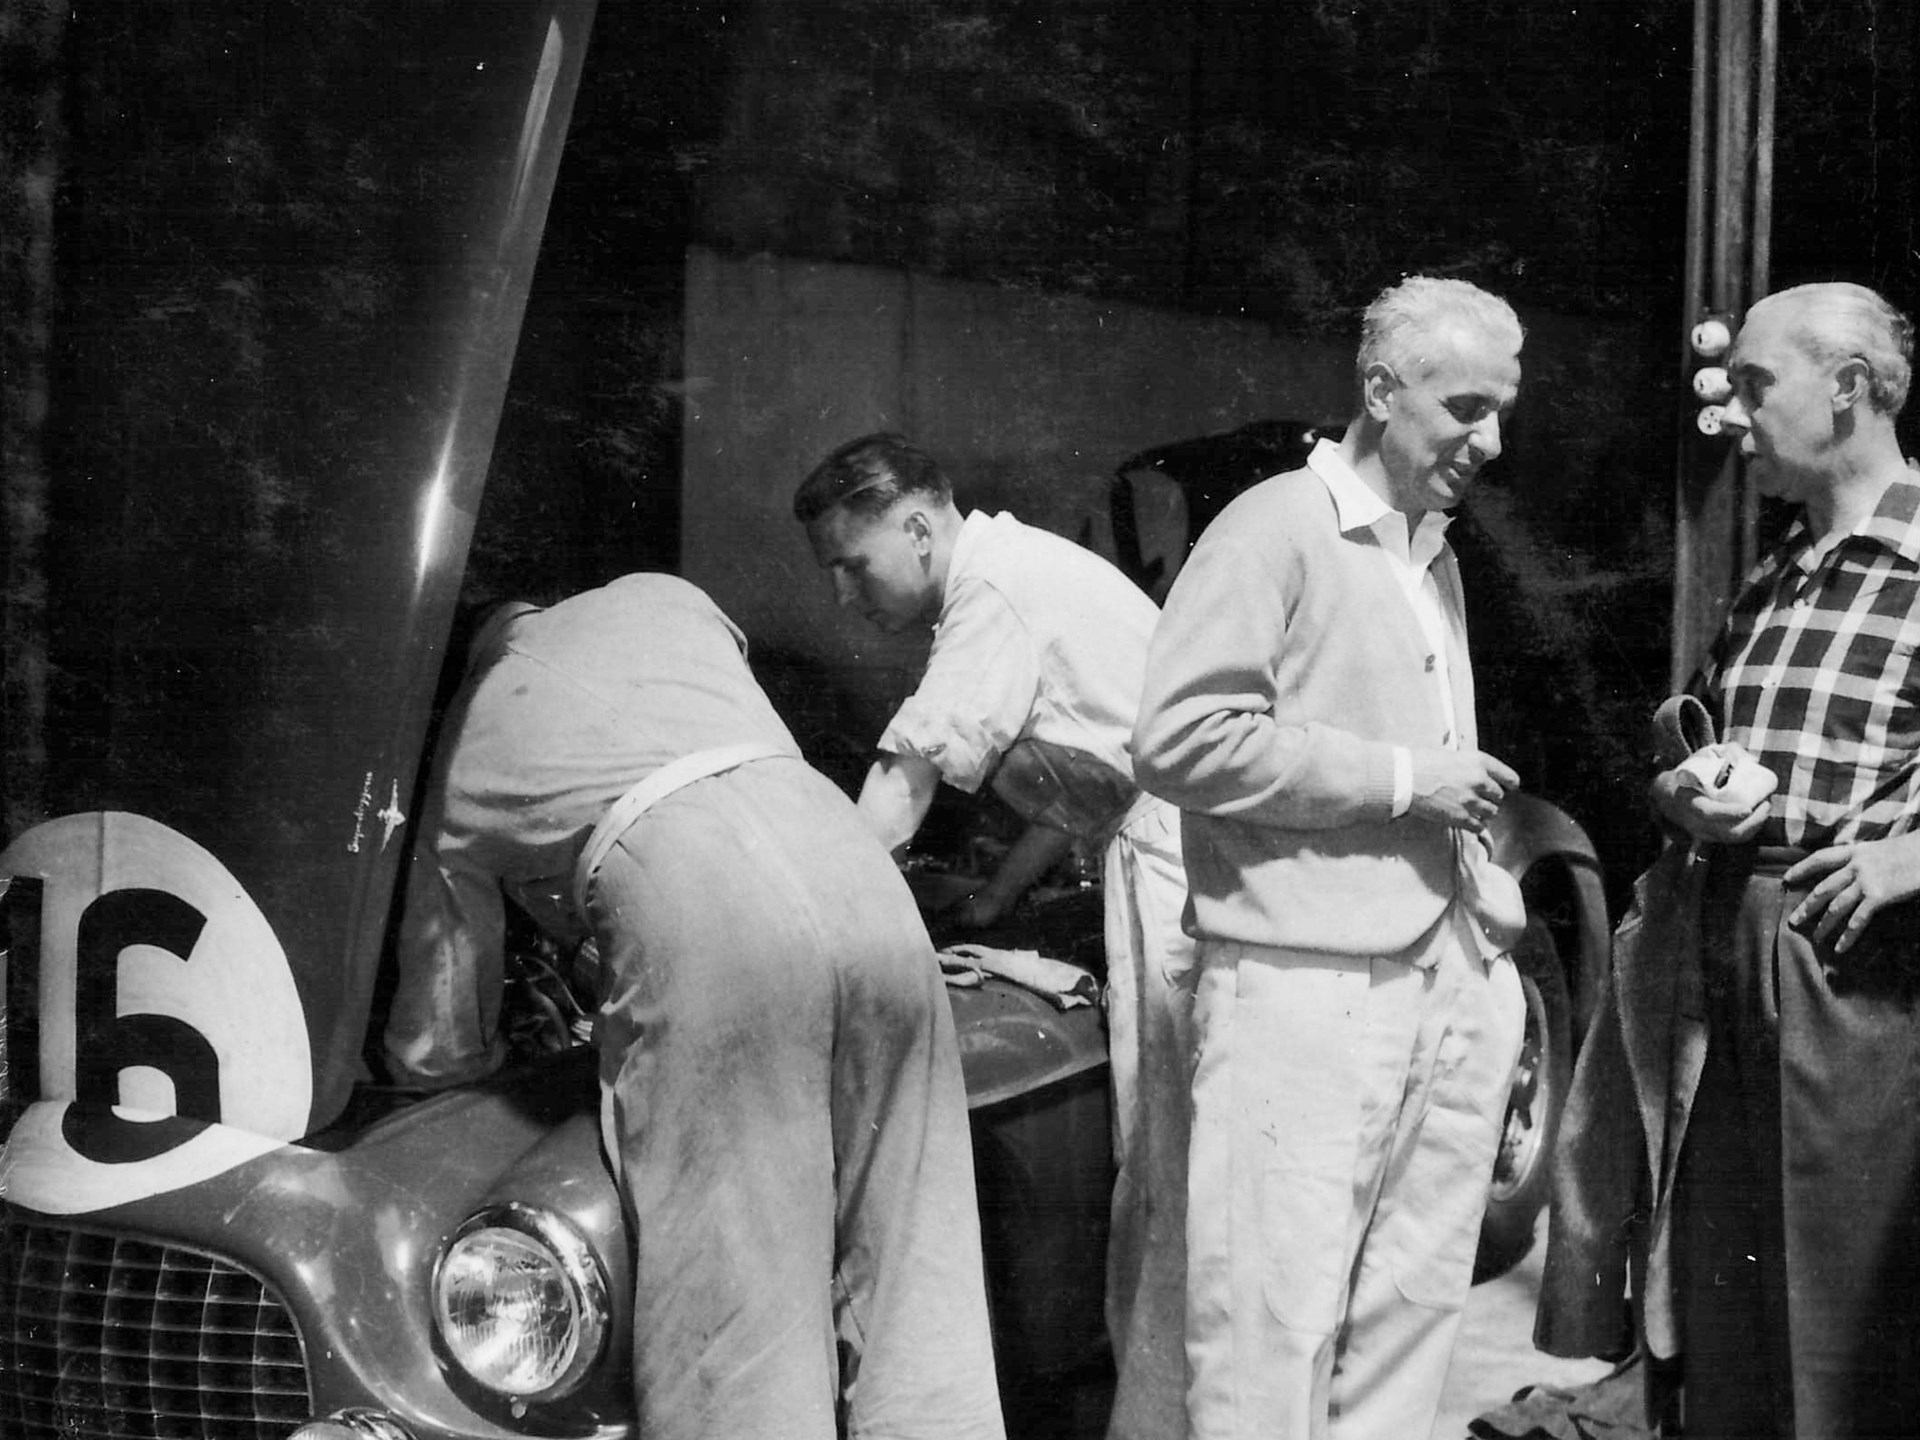 Chassis 0116/A in the paddock at Le Mans in 1952.